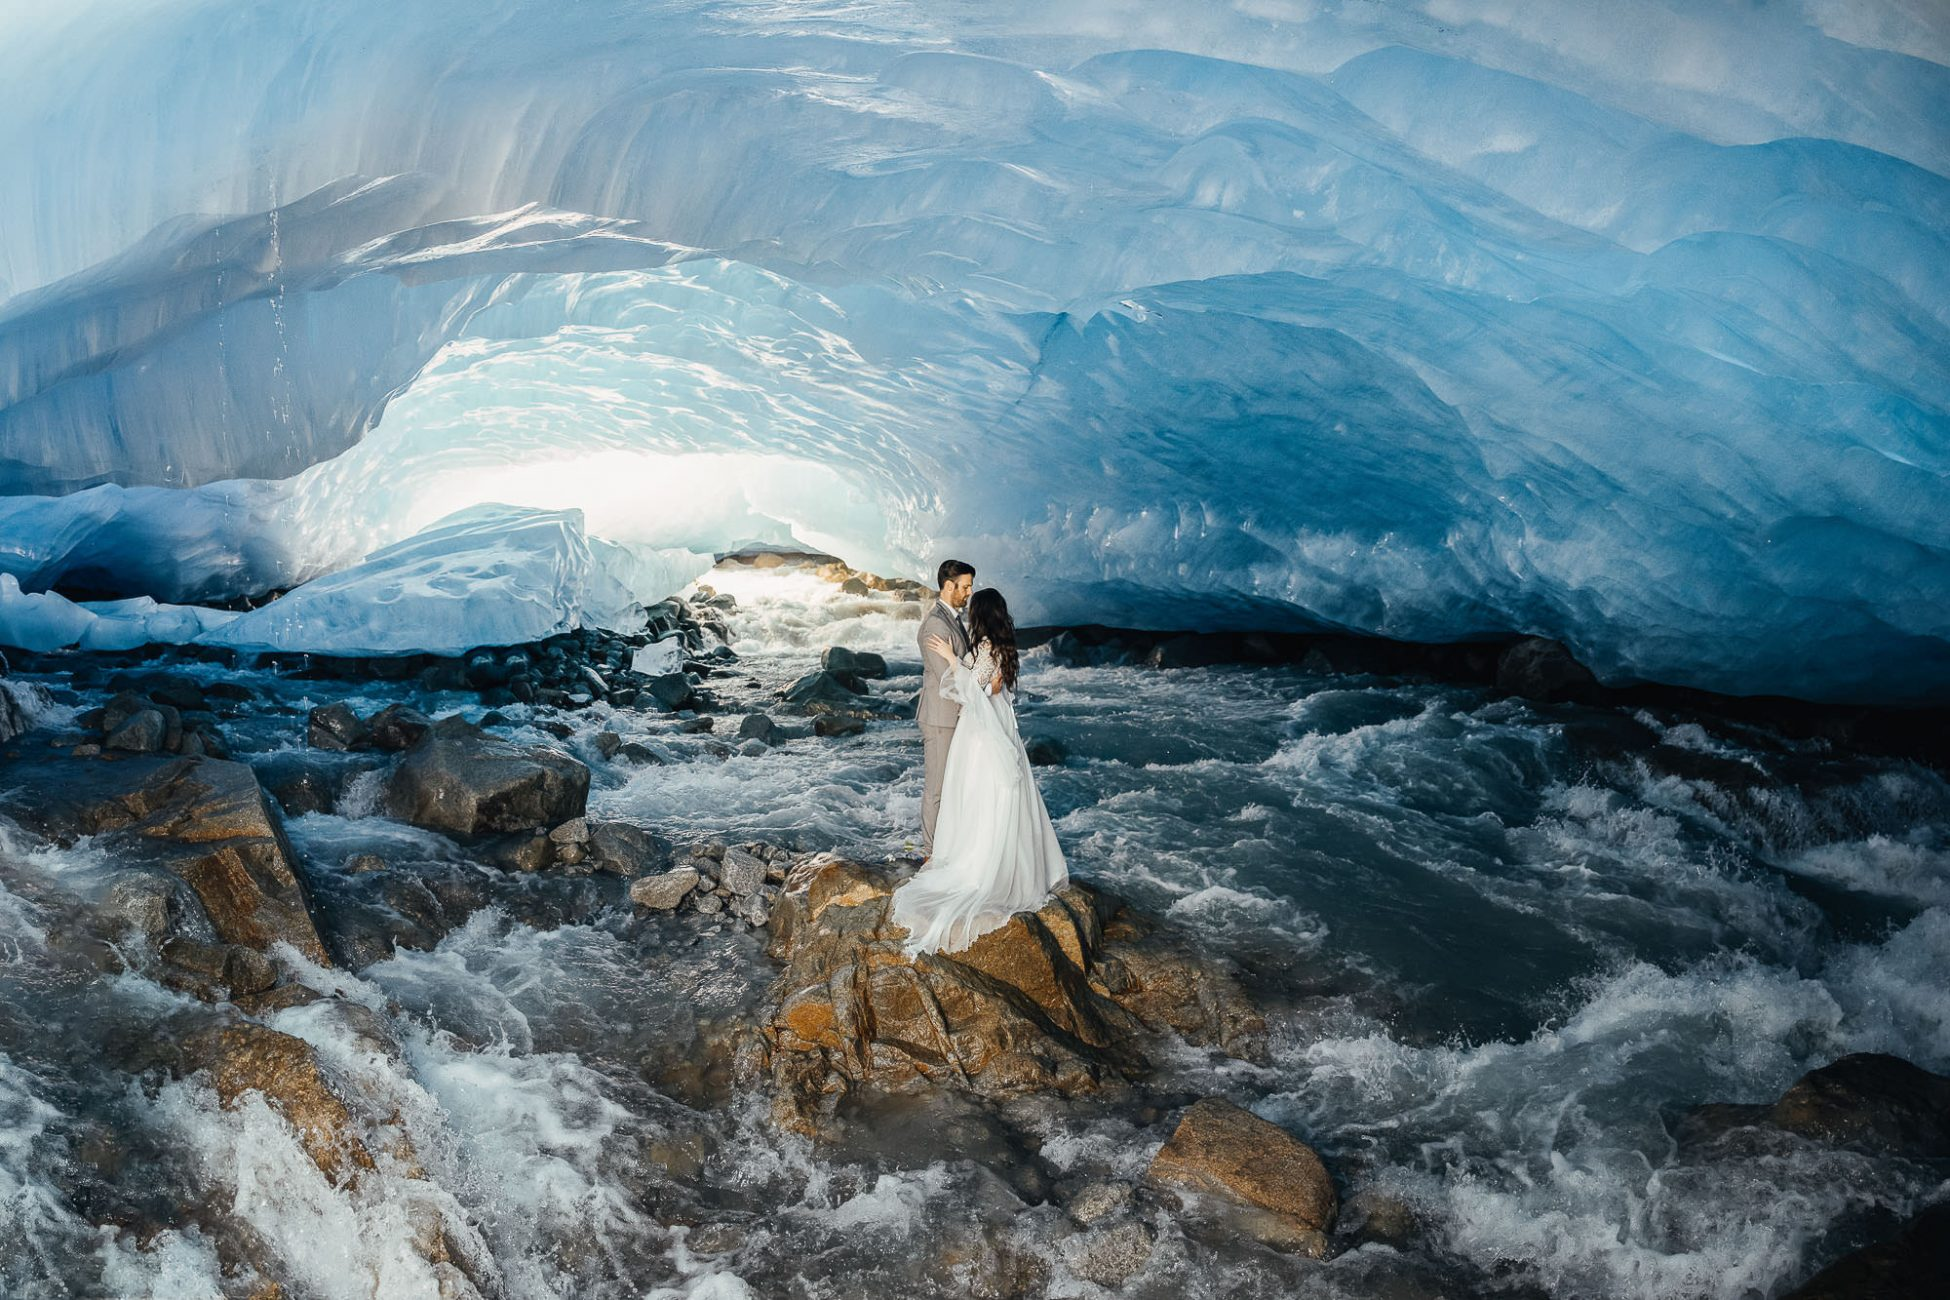 Bride and groom are standing in the Whistler Ice Cave posing for wedding photos